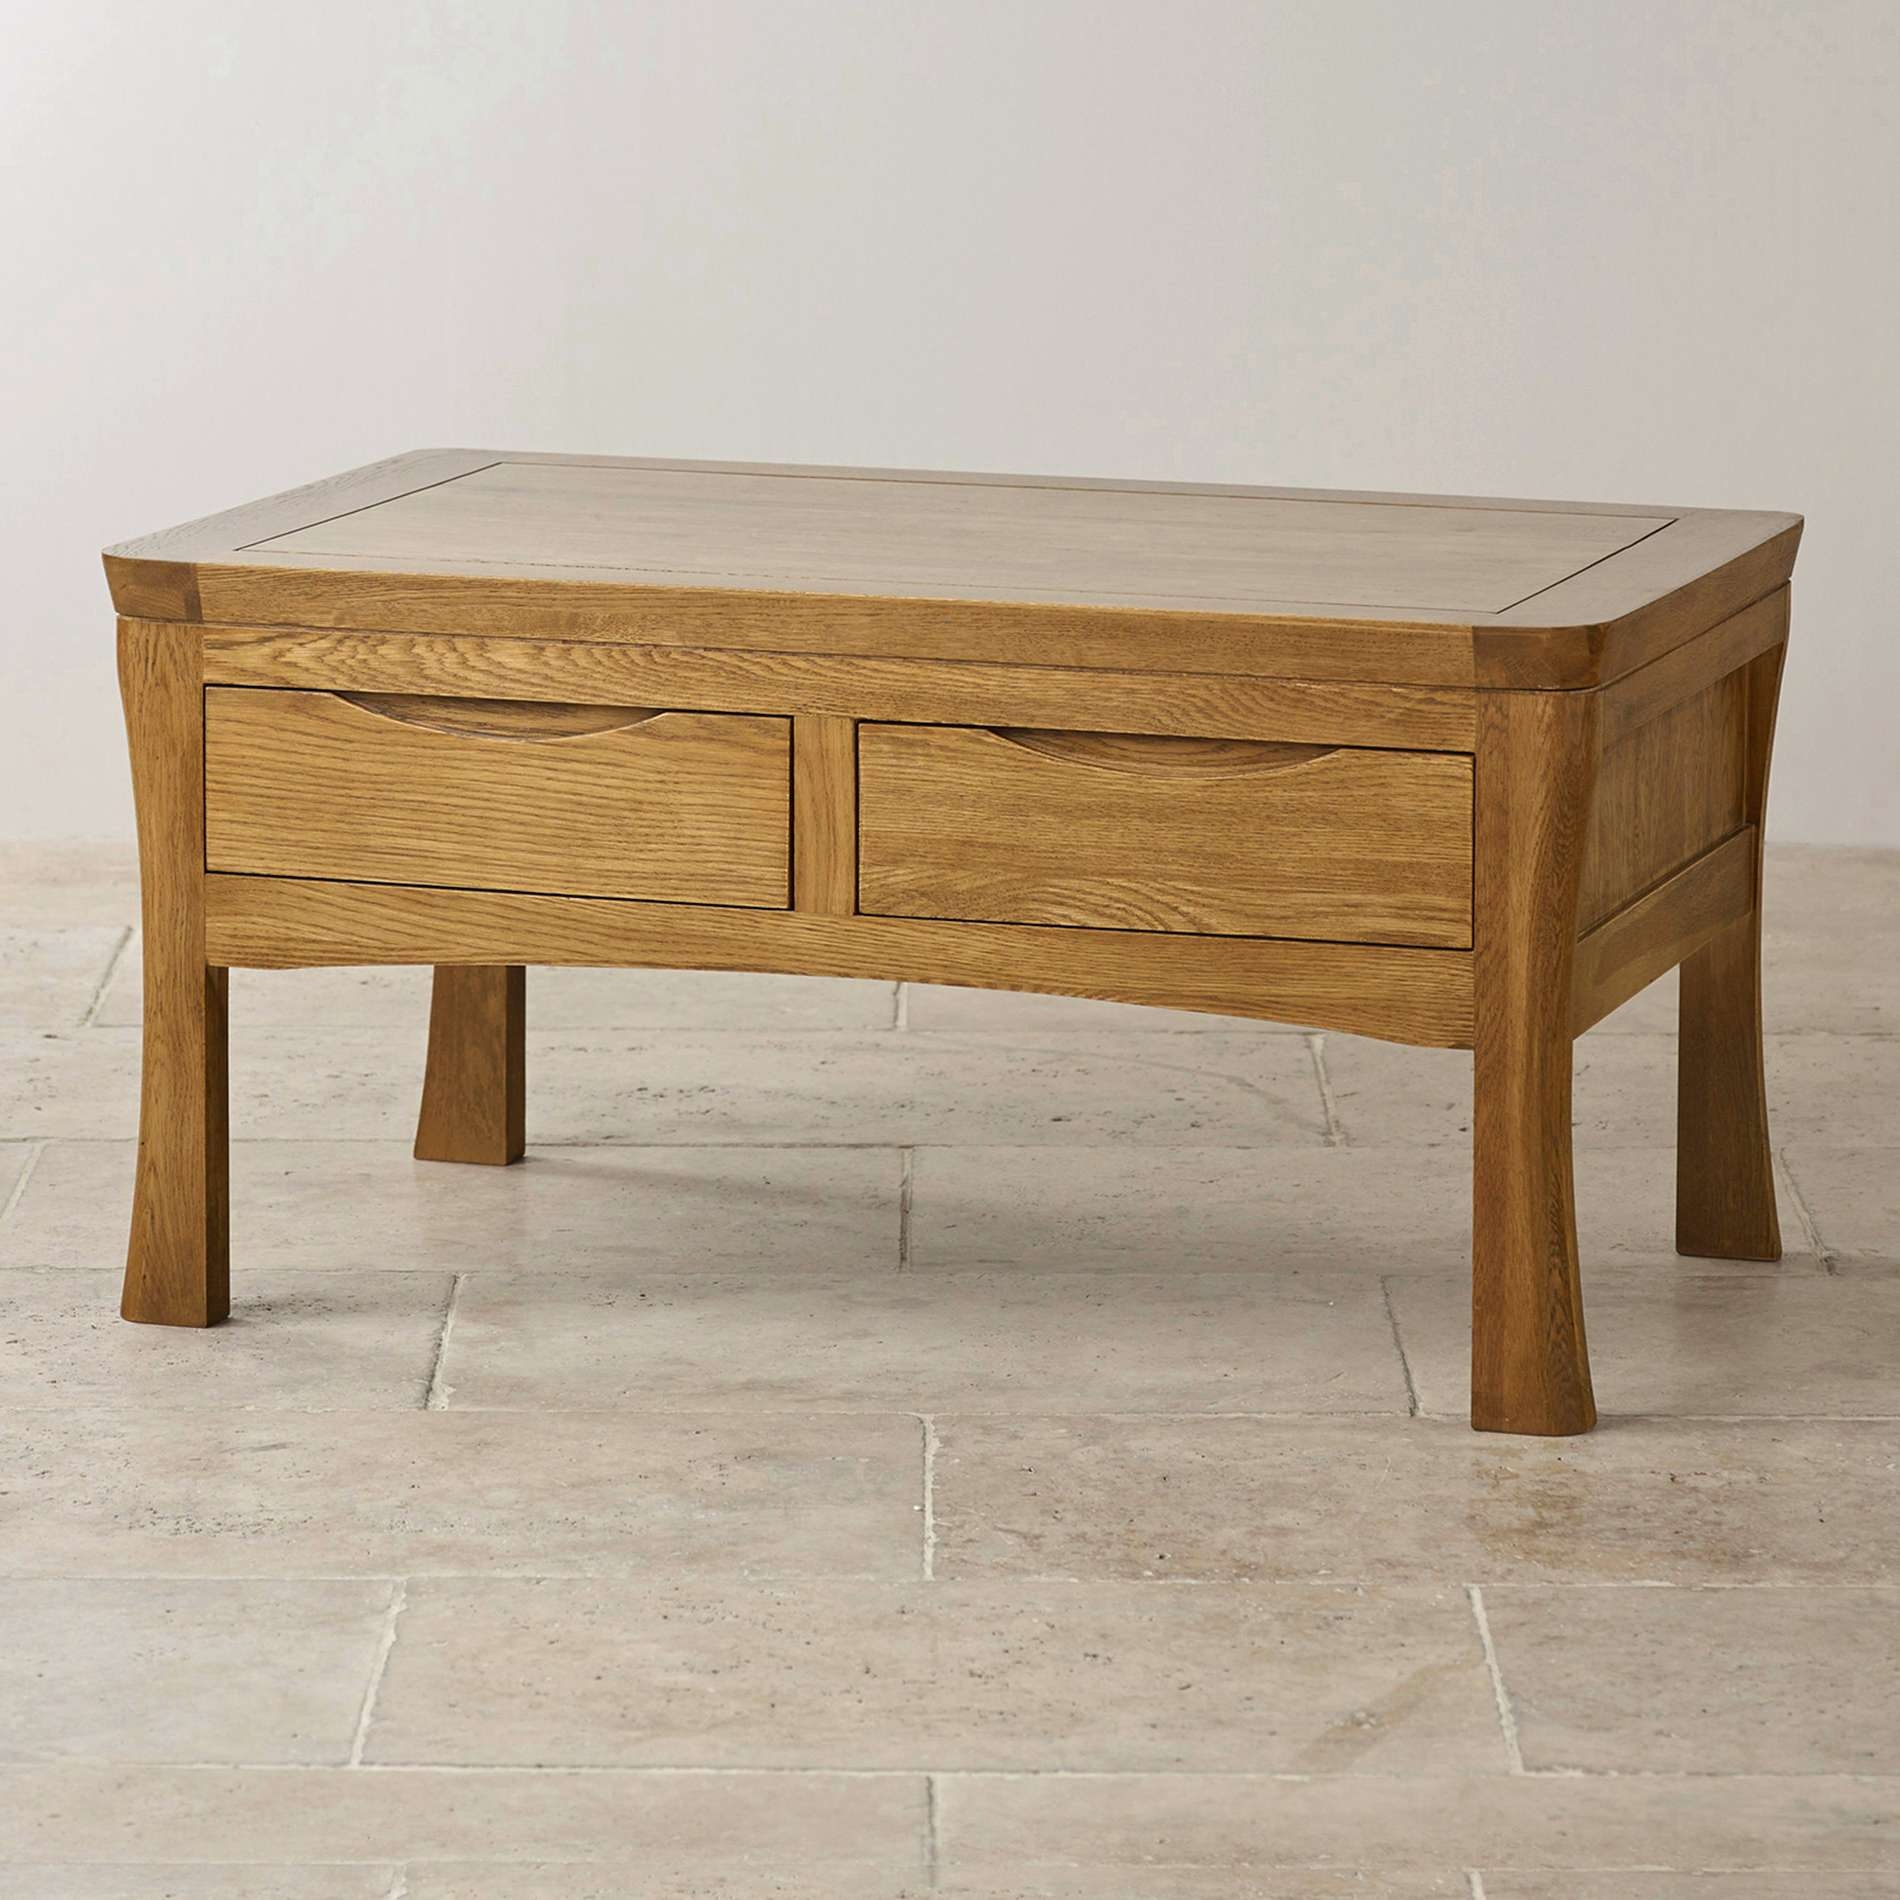 Well Known Solid Oak Coffee Table With Storage Intended For Coffee Tables : Solid Wood Coffee Table With Drawers And Shelf Oak (View 19 of 20)